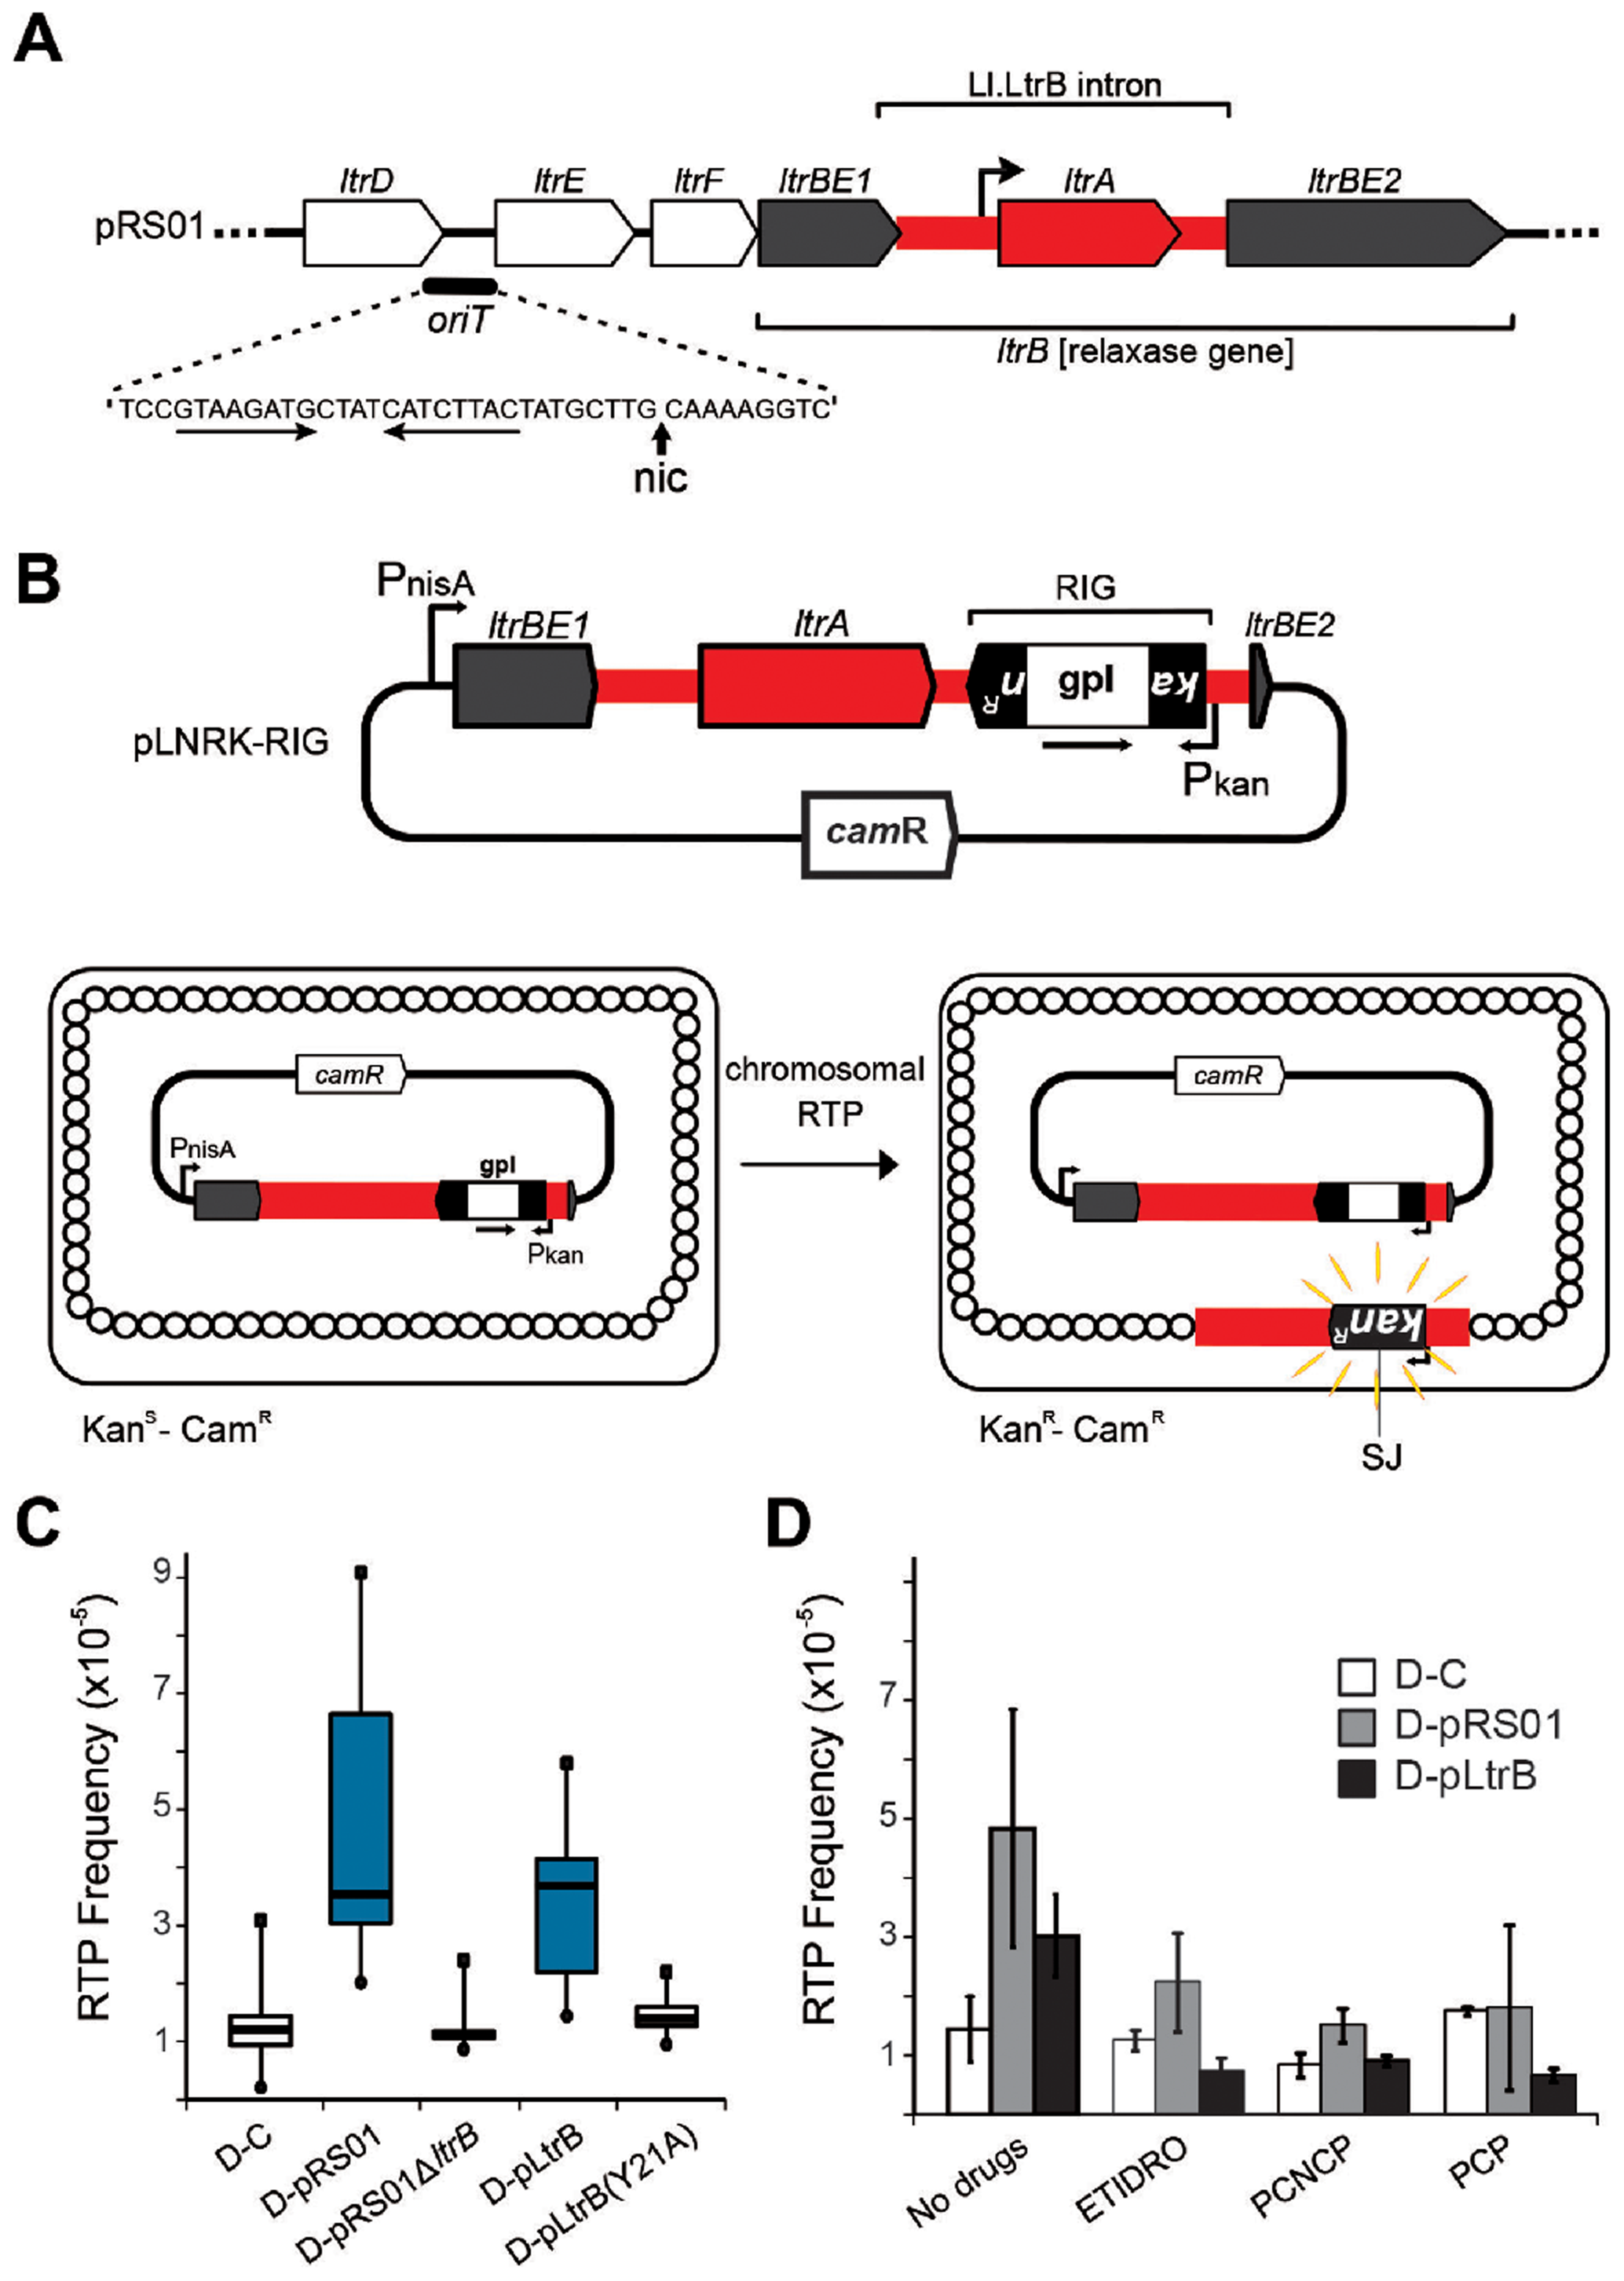 Relaxase-stimulated Ll.LtrB intron retrotransposition.